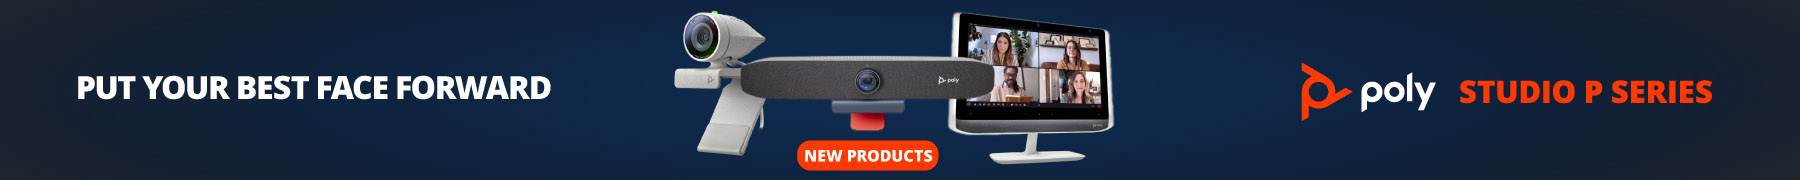 New Poly Studio P Series at HelloDirect.com